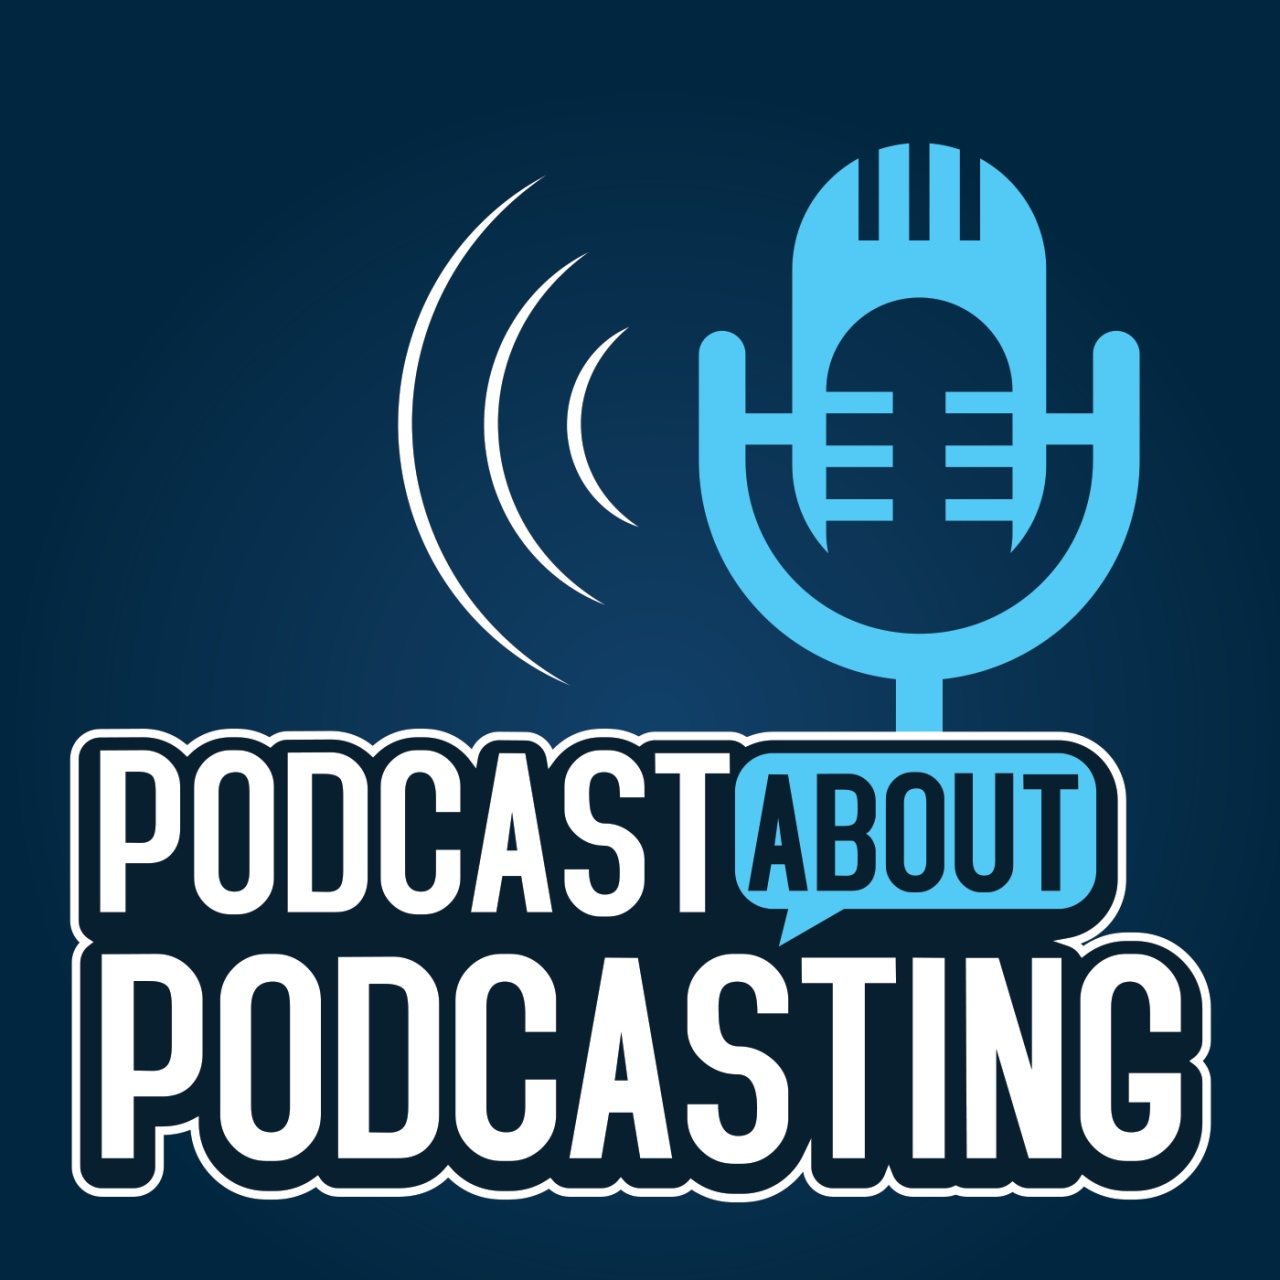 Podcast About Podcasting